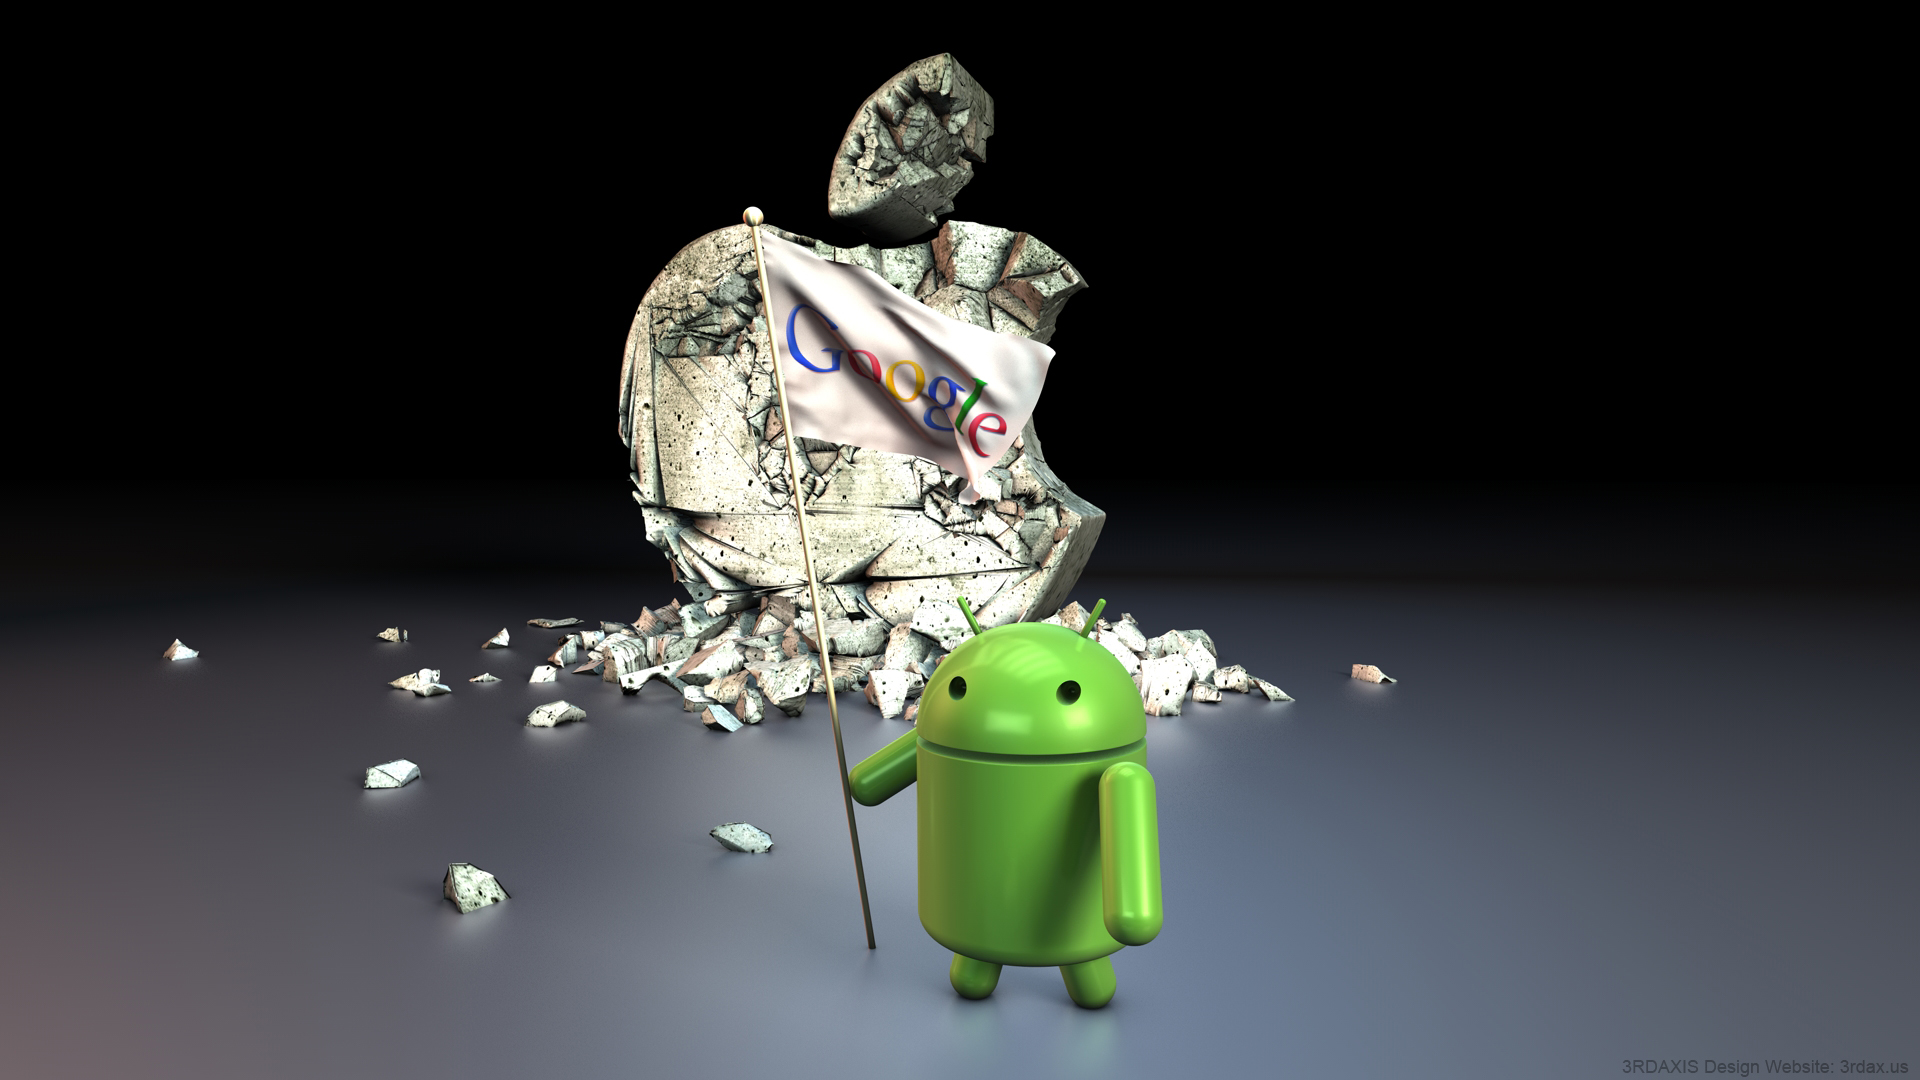 android web wallpaper 3rdaxisdesign takeover wallpapers 1920x1080